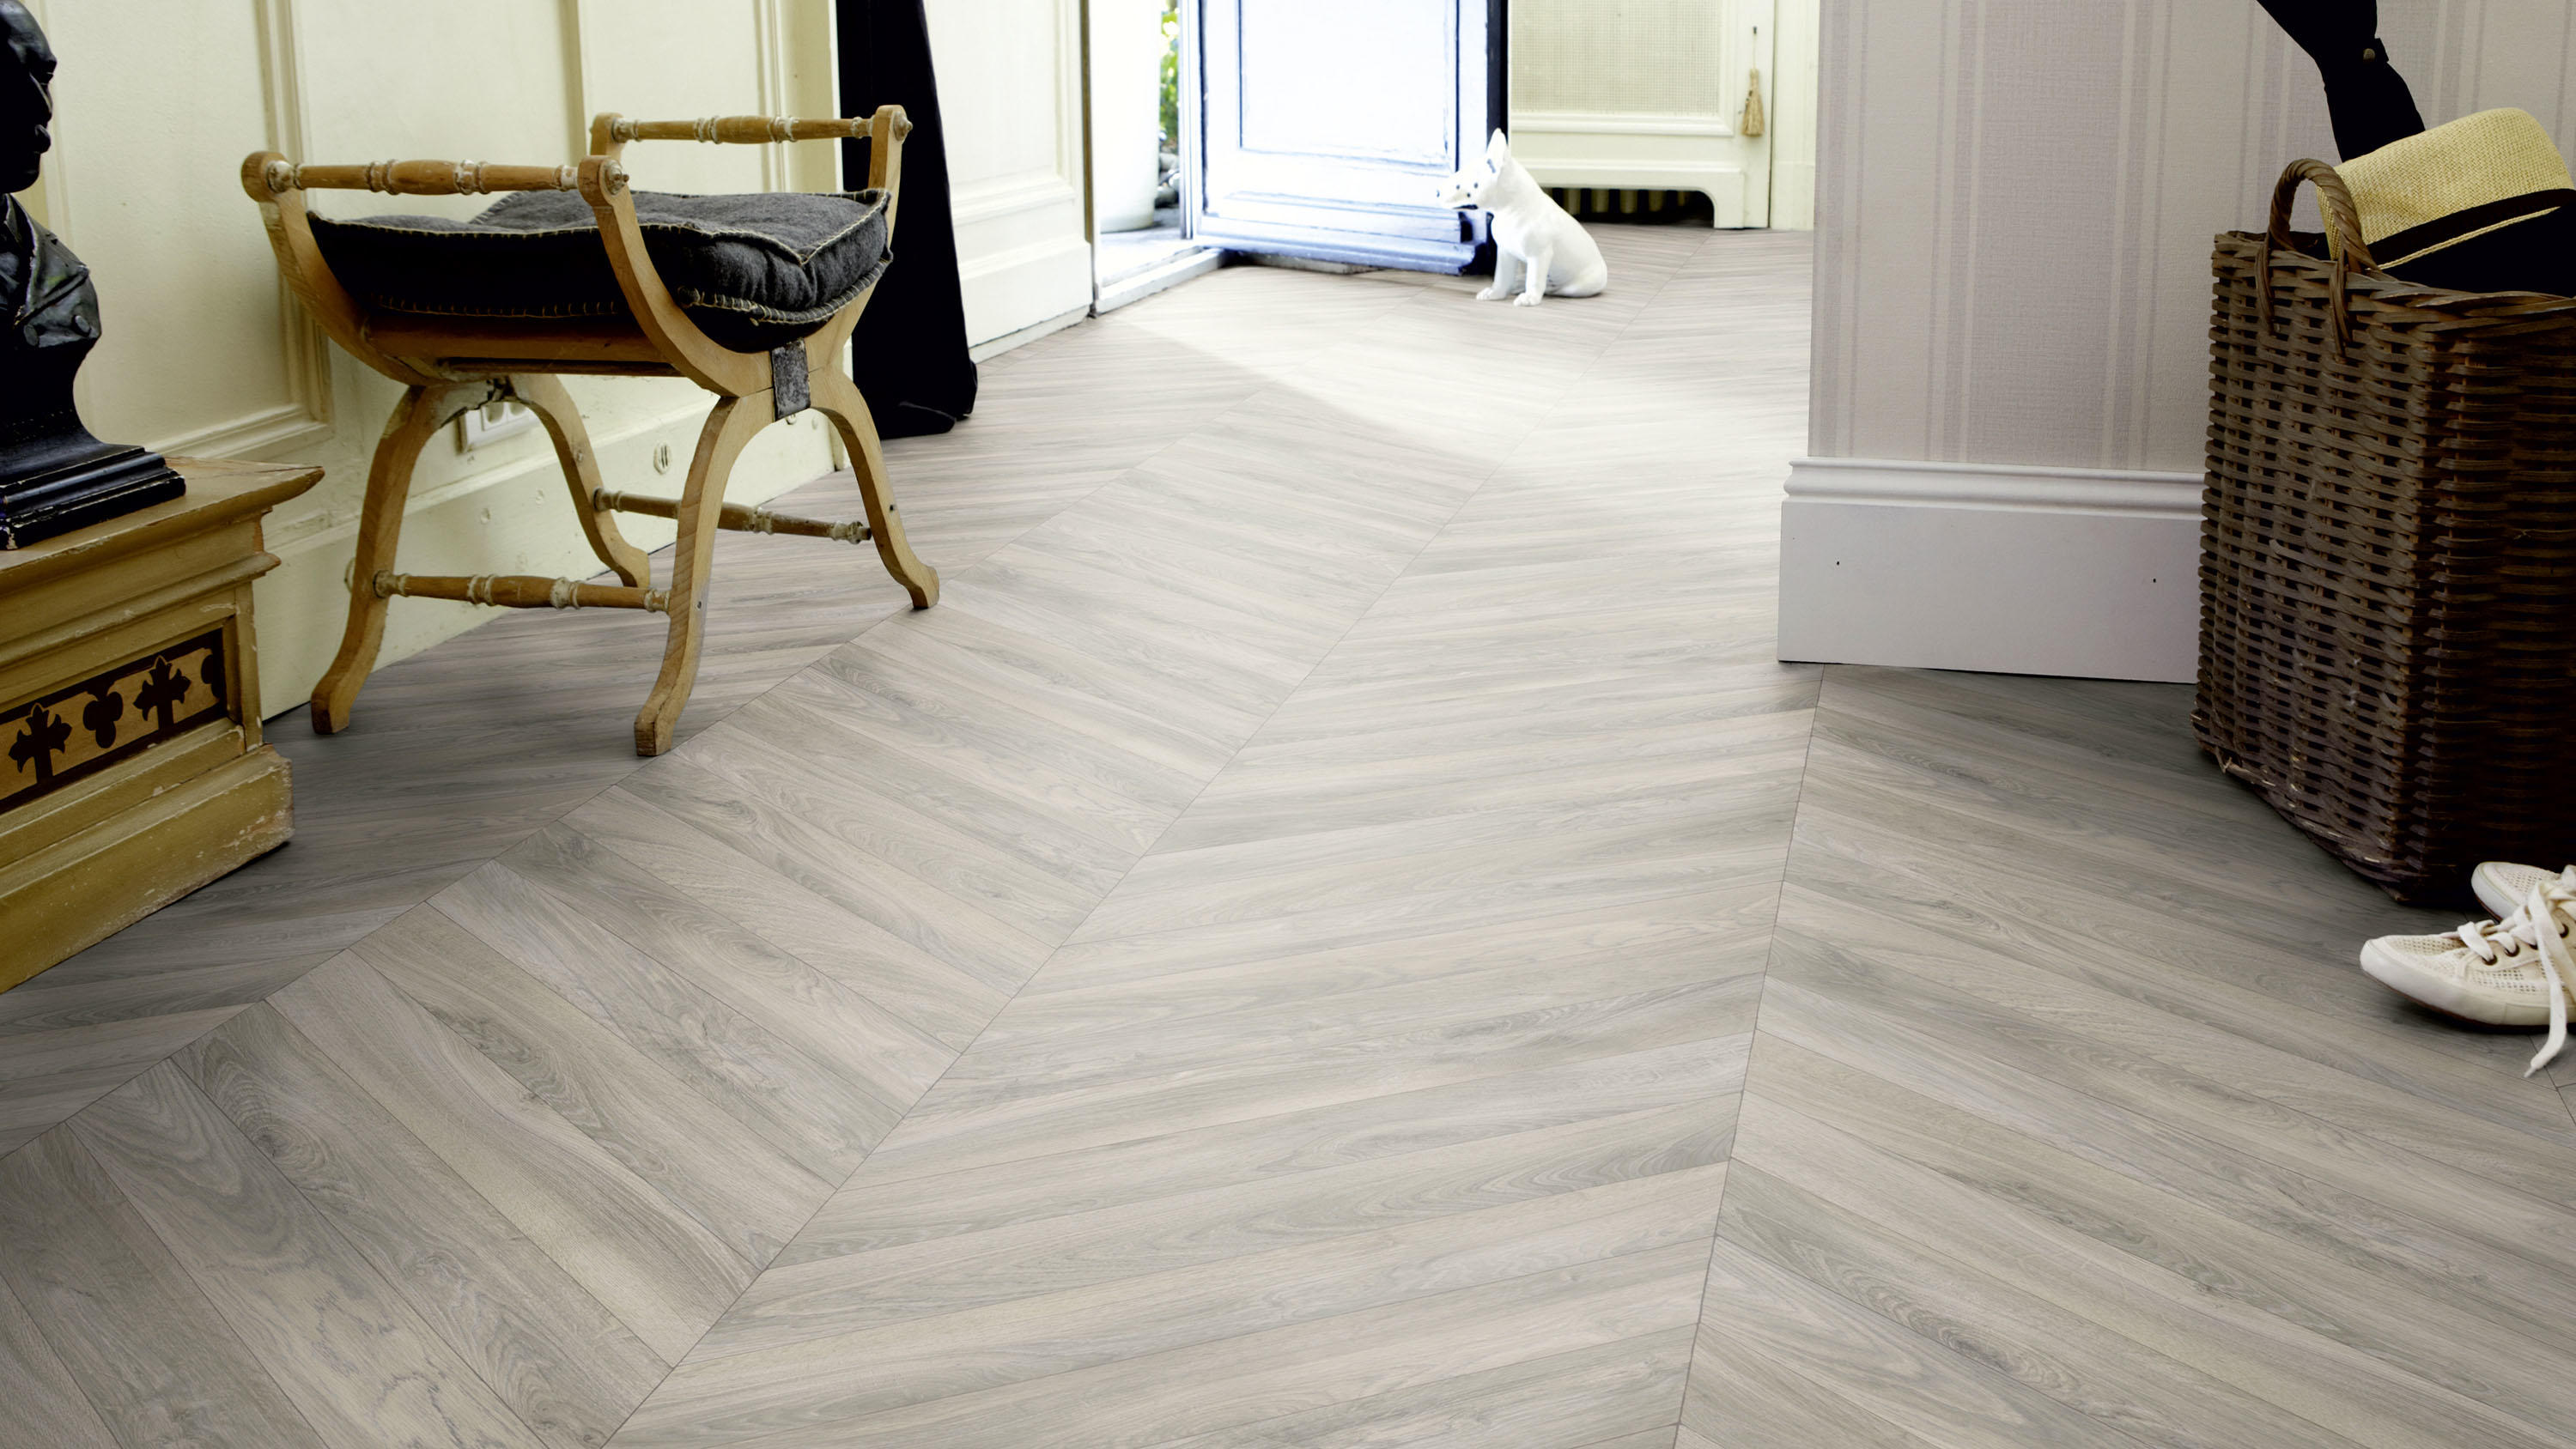 Goliath Residential Cushioned Vinyl Floors Home And